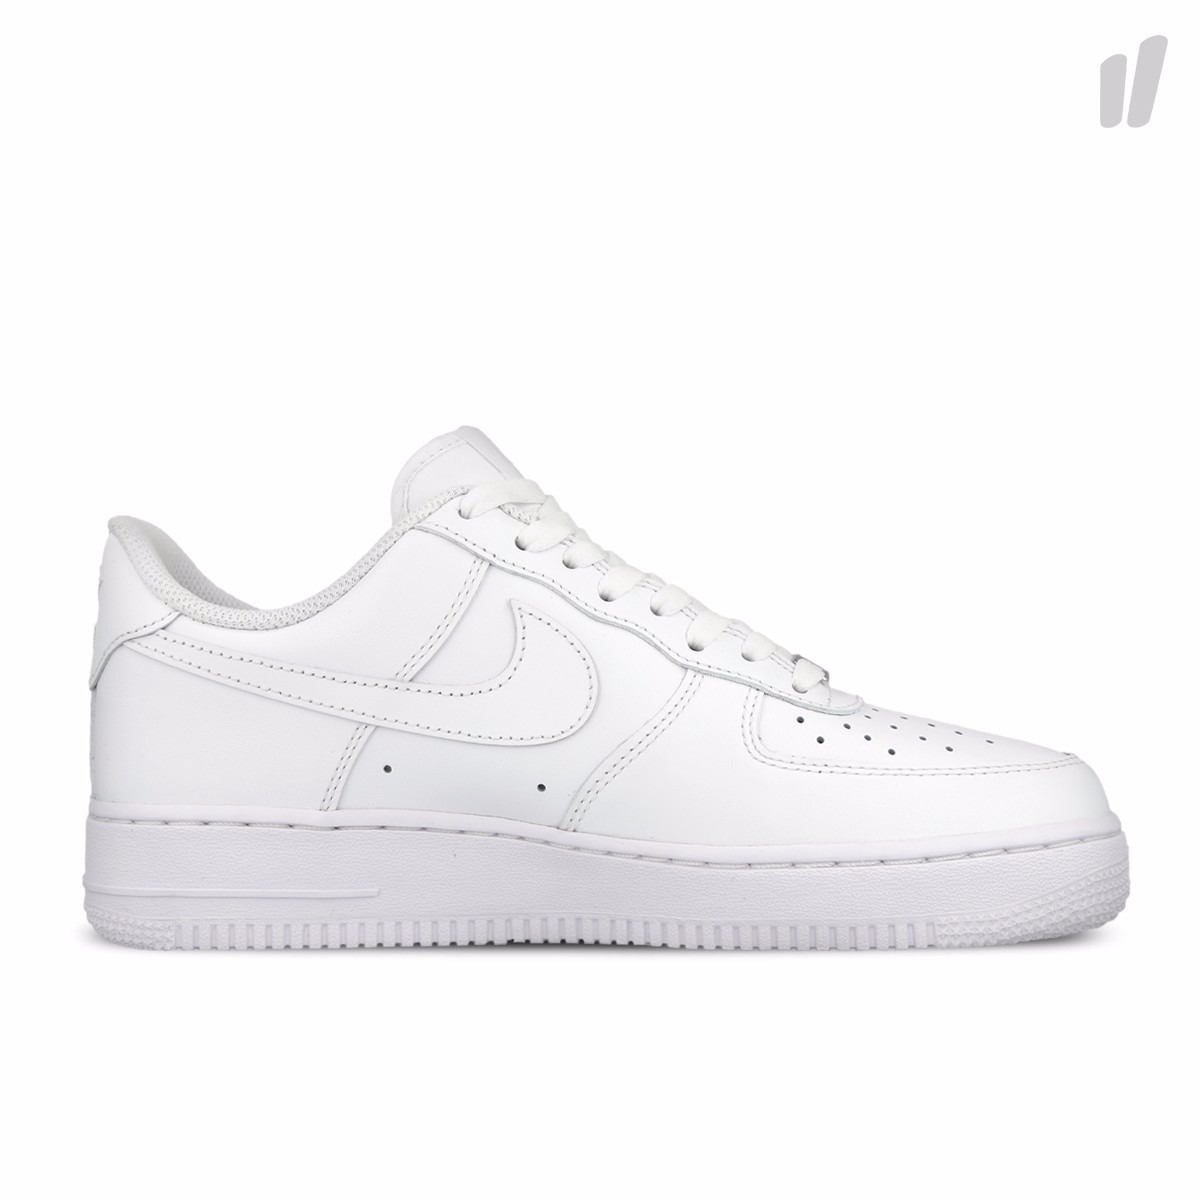 Zapatillas Nike Air en Force 1 07 Mujer  00 en Air Mercado Libre a607da